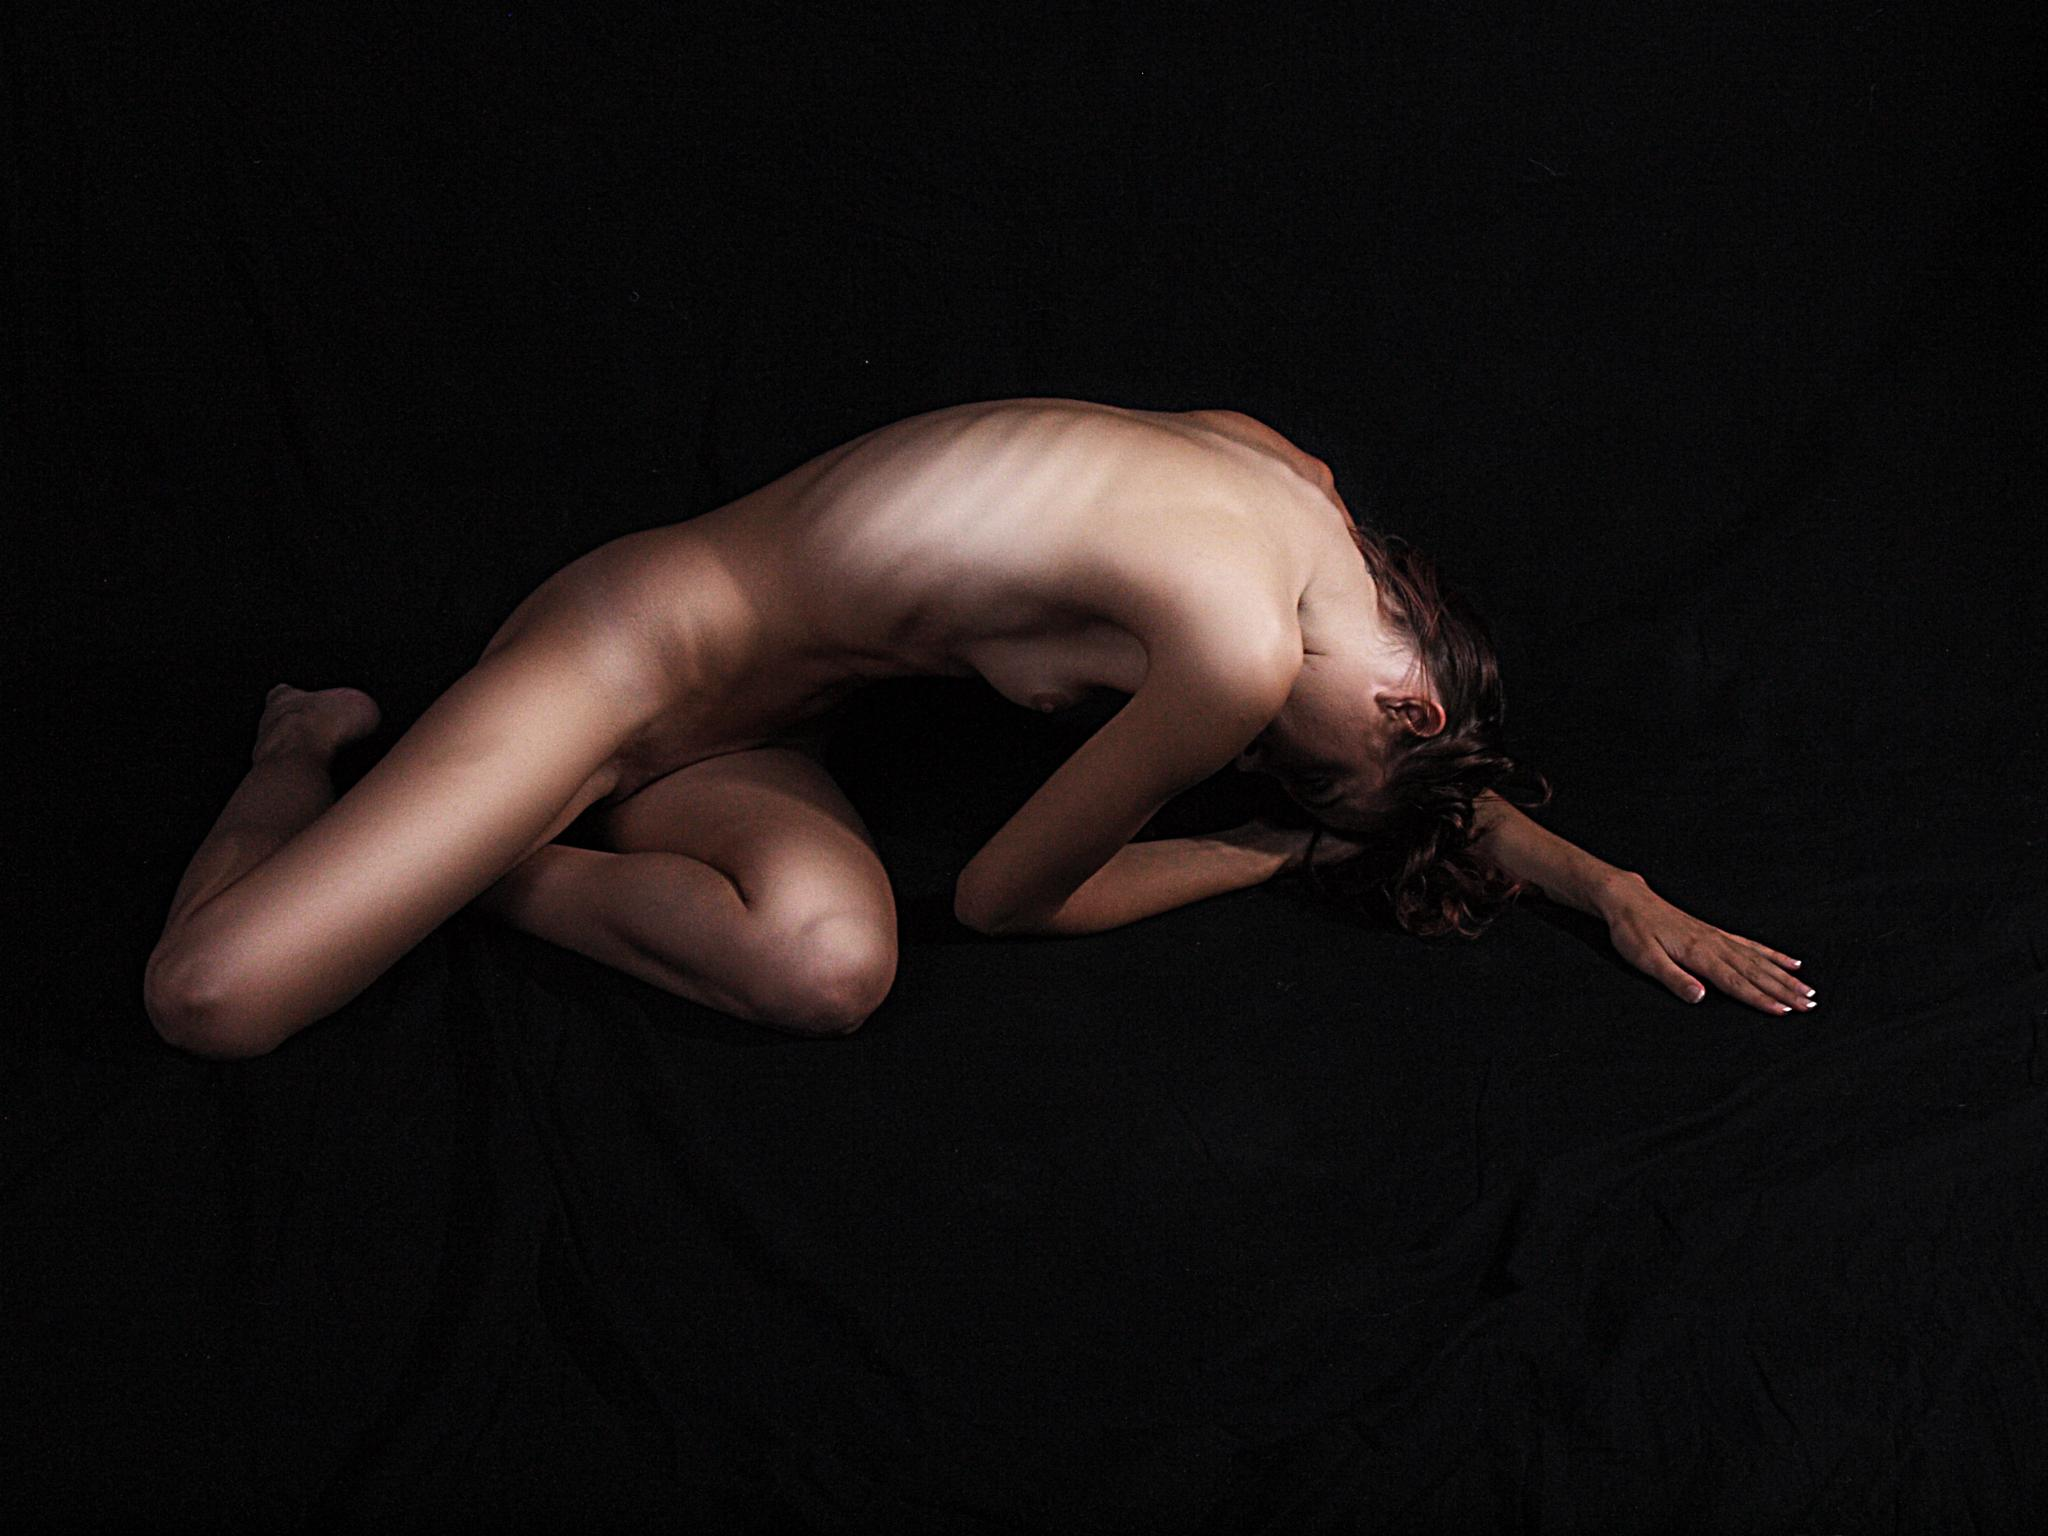 Face Down by swhiteimages